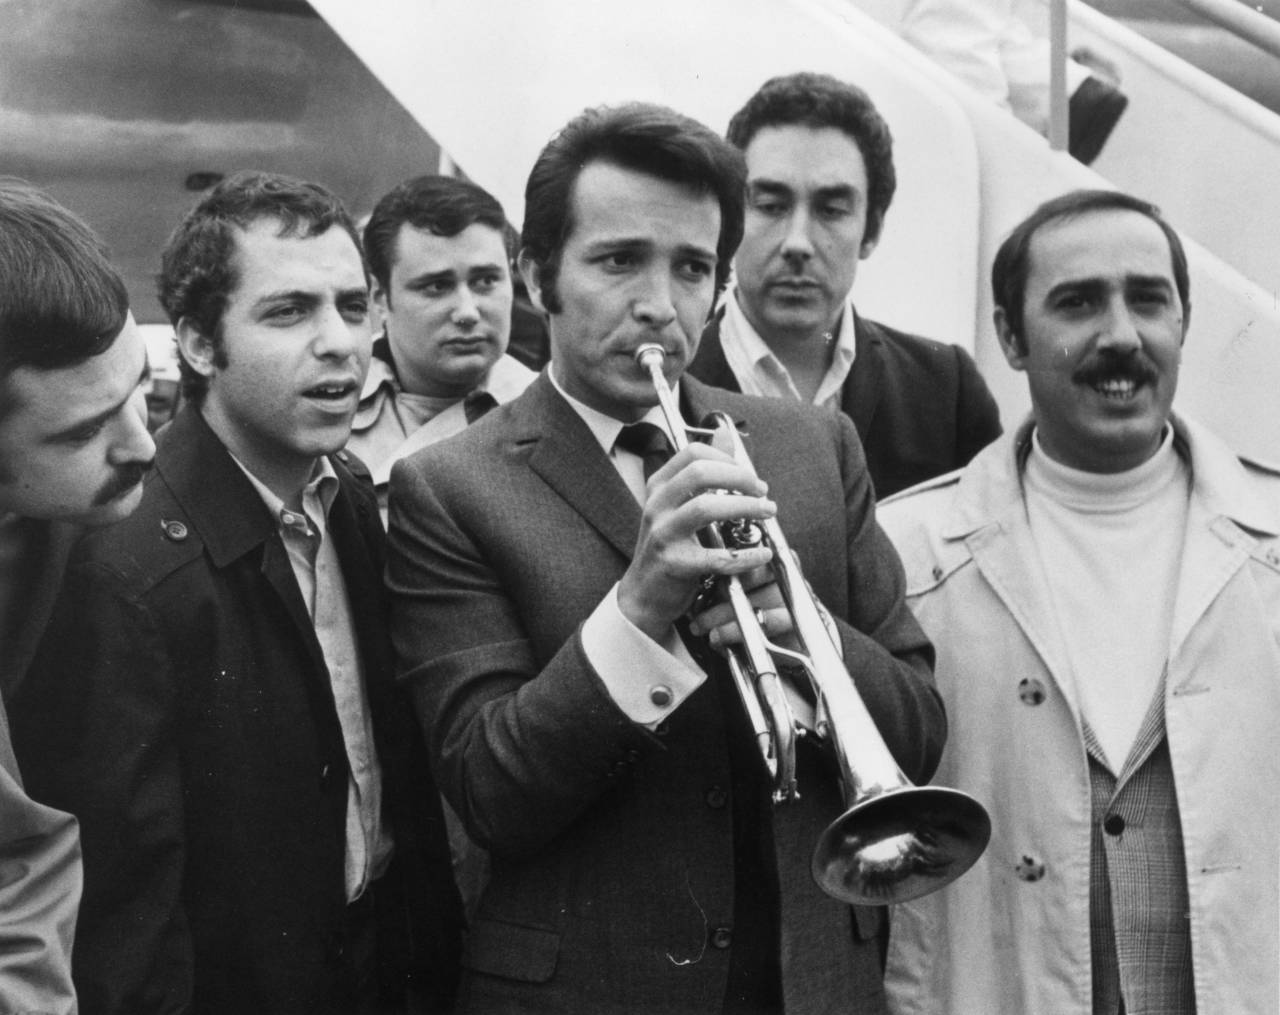 6th October 1966: Trumpeter Herb Alpert with members of his combo on their arrival at London Airport. They are here for a concert at the Albert Hall. (Photo by Central Press/Getty Images)